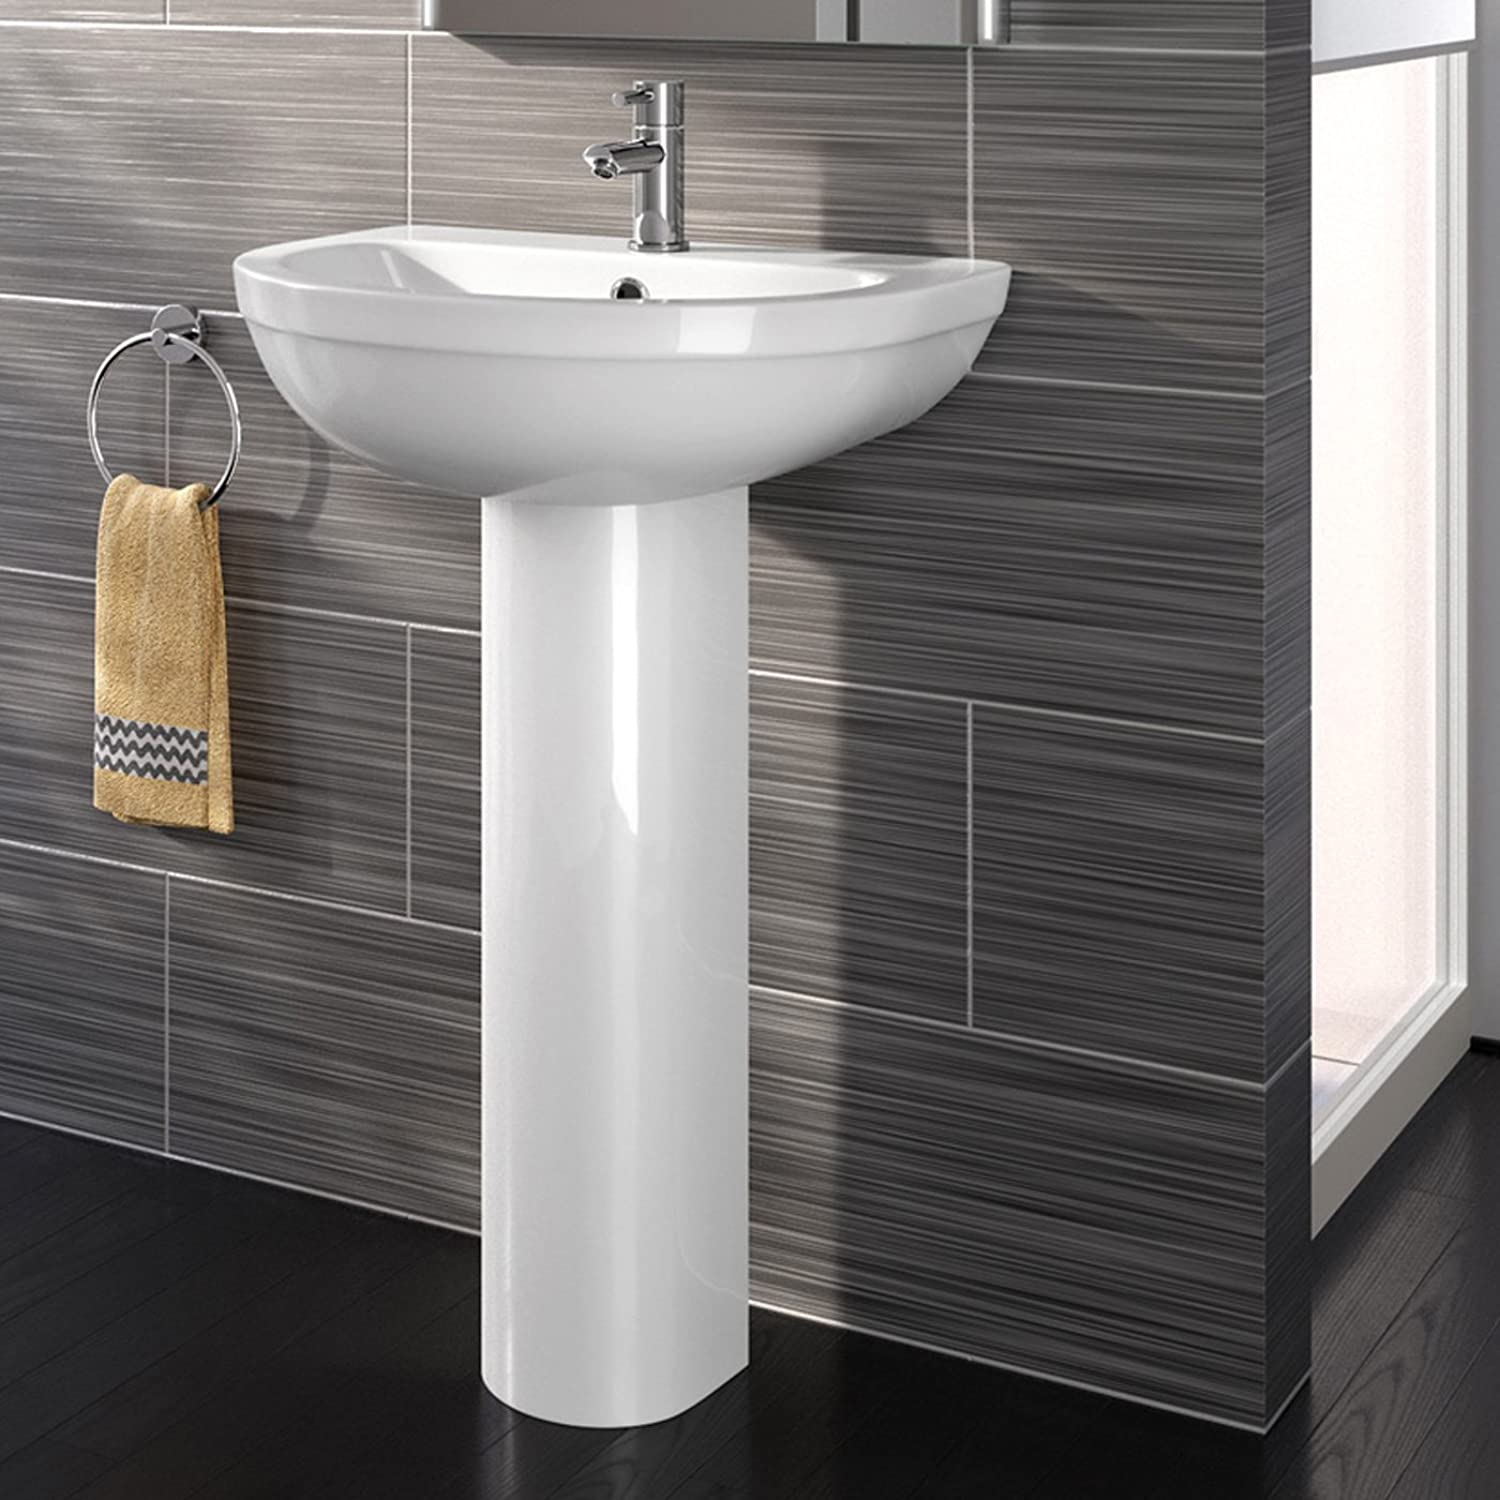 Modern White Ceramic Full Pedestal Basin Single Tap Hole Bathroom Sink